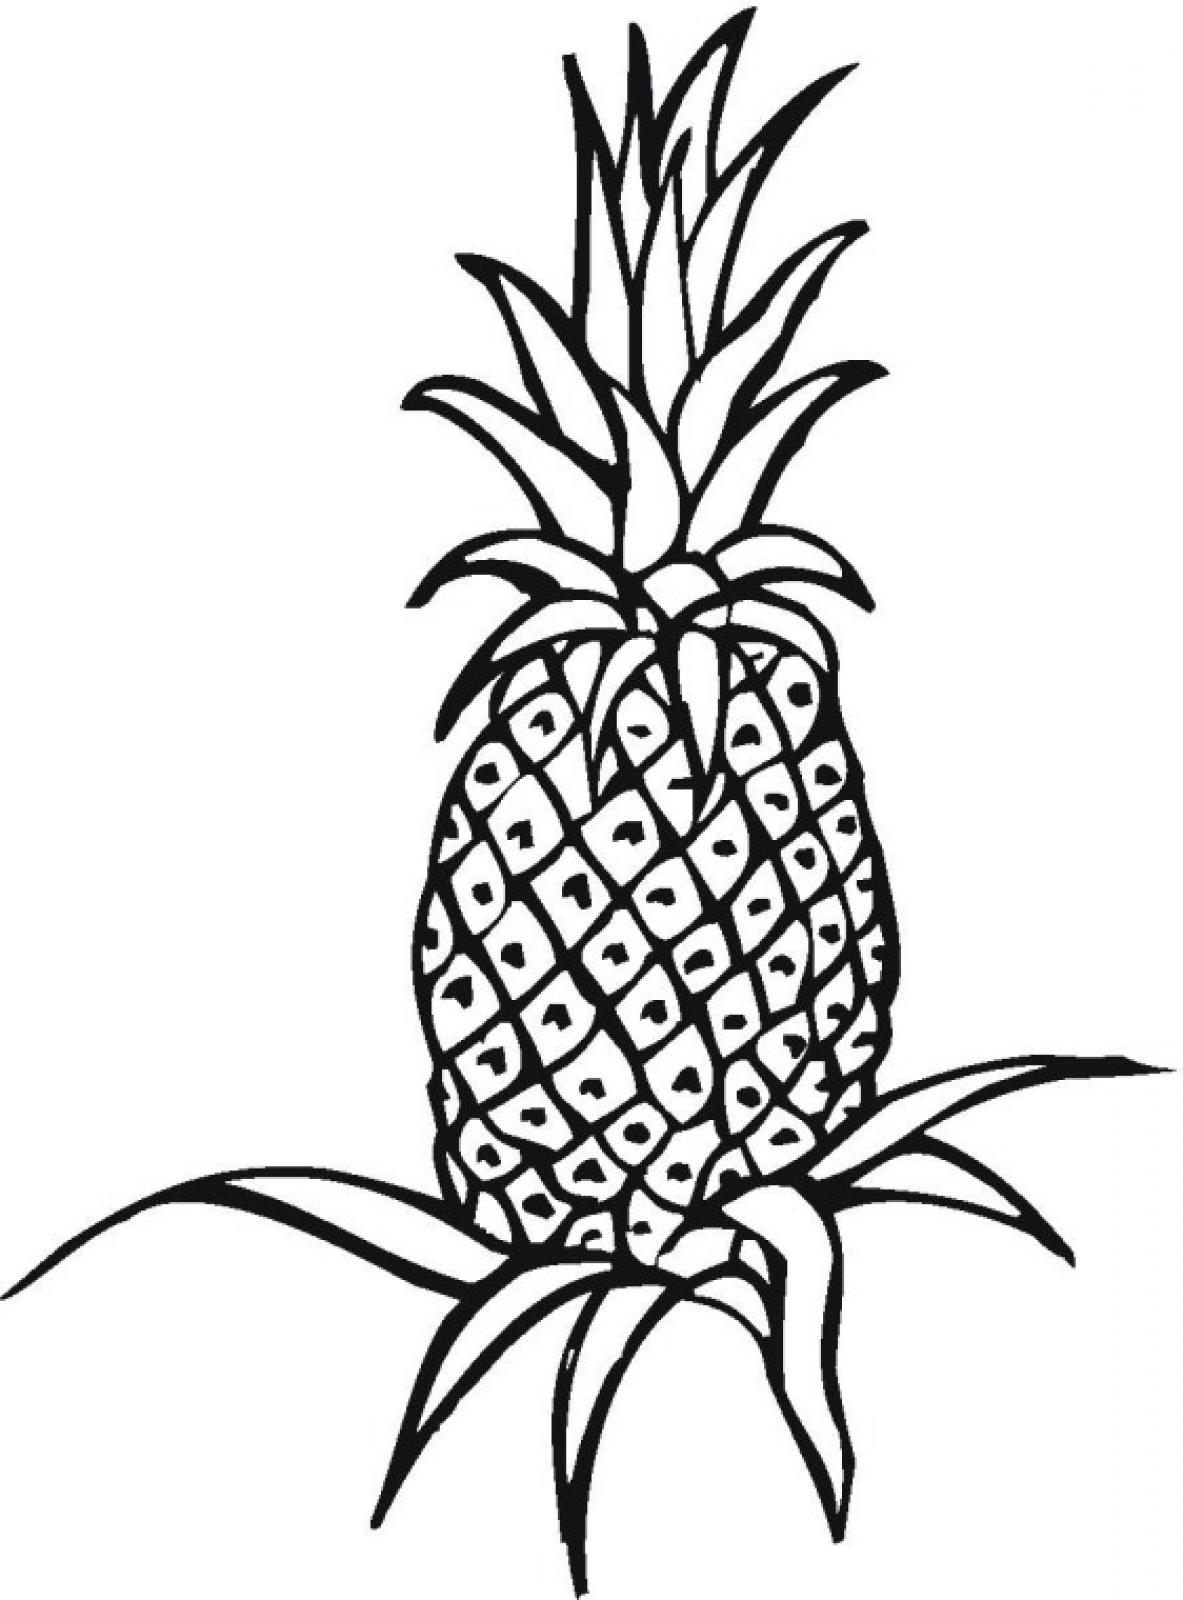 Printable Pineapple Coloring Page also Printable Pineapple Coloring ...